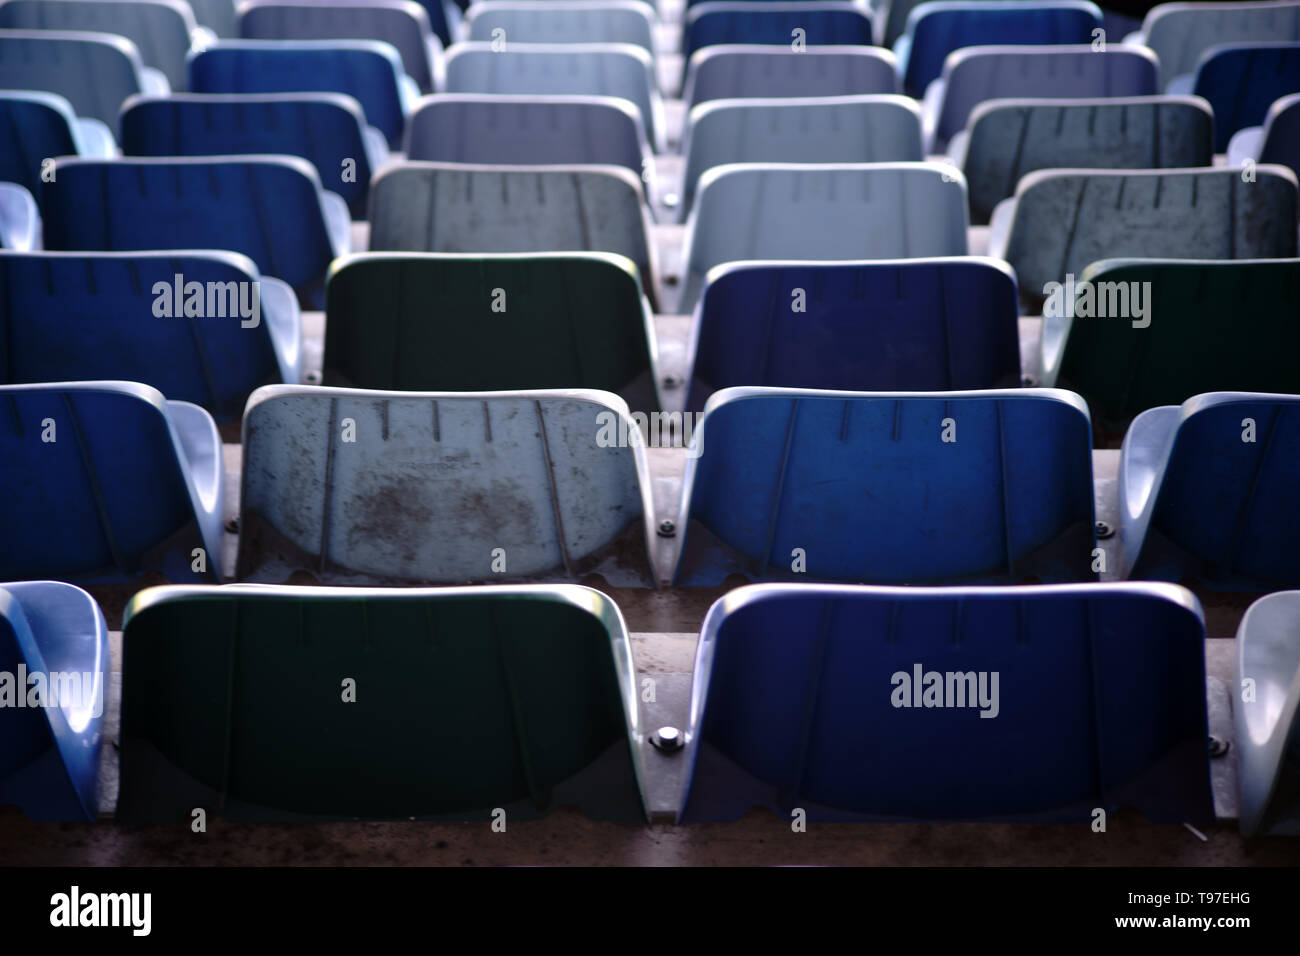 The rear view on the backs and seats of rows of seats in a stadium. - Stock Image